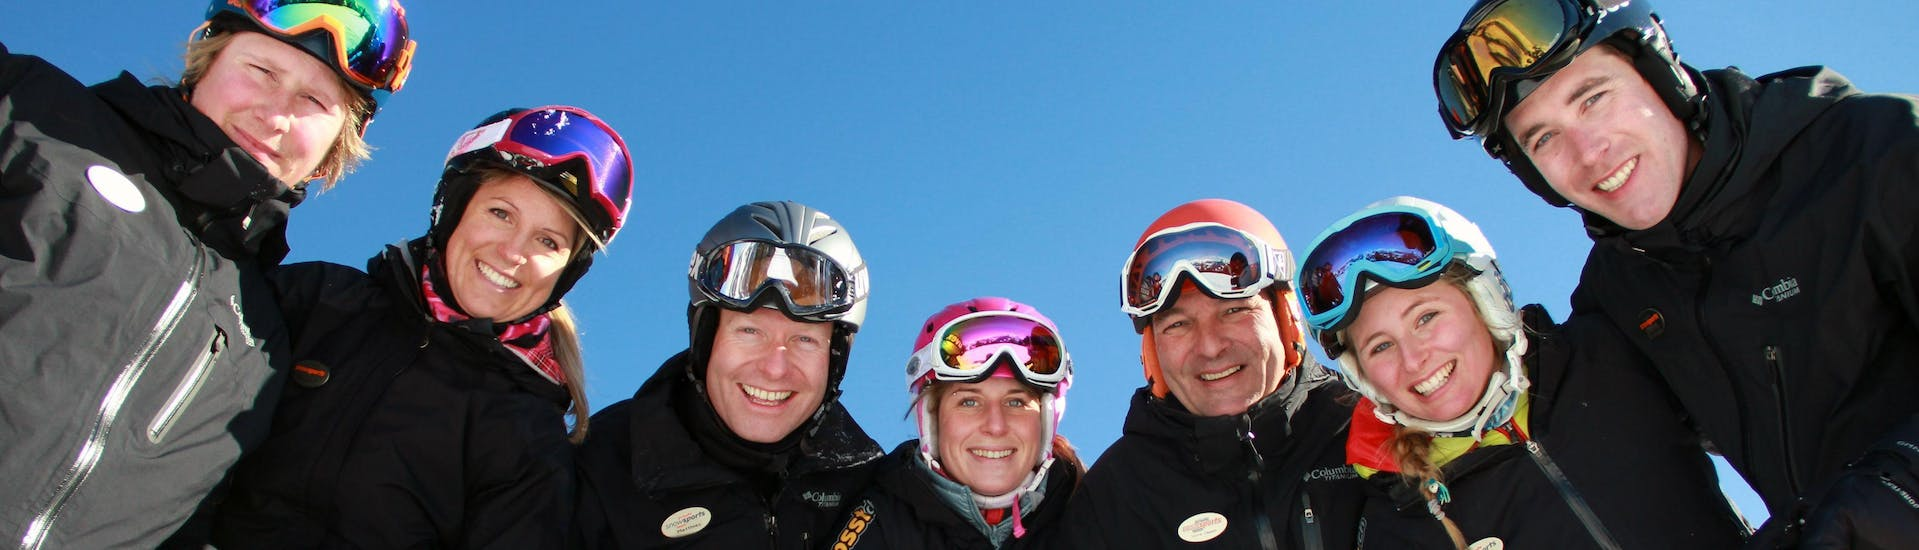 "Ski Instructor Private ""Morning"" for Adults - All Levels"